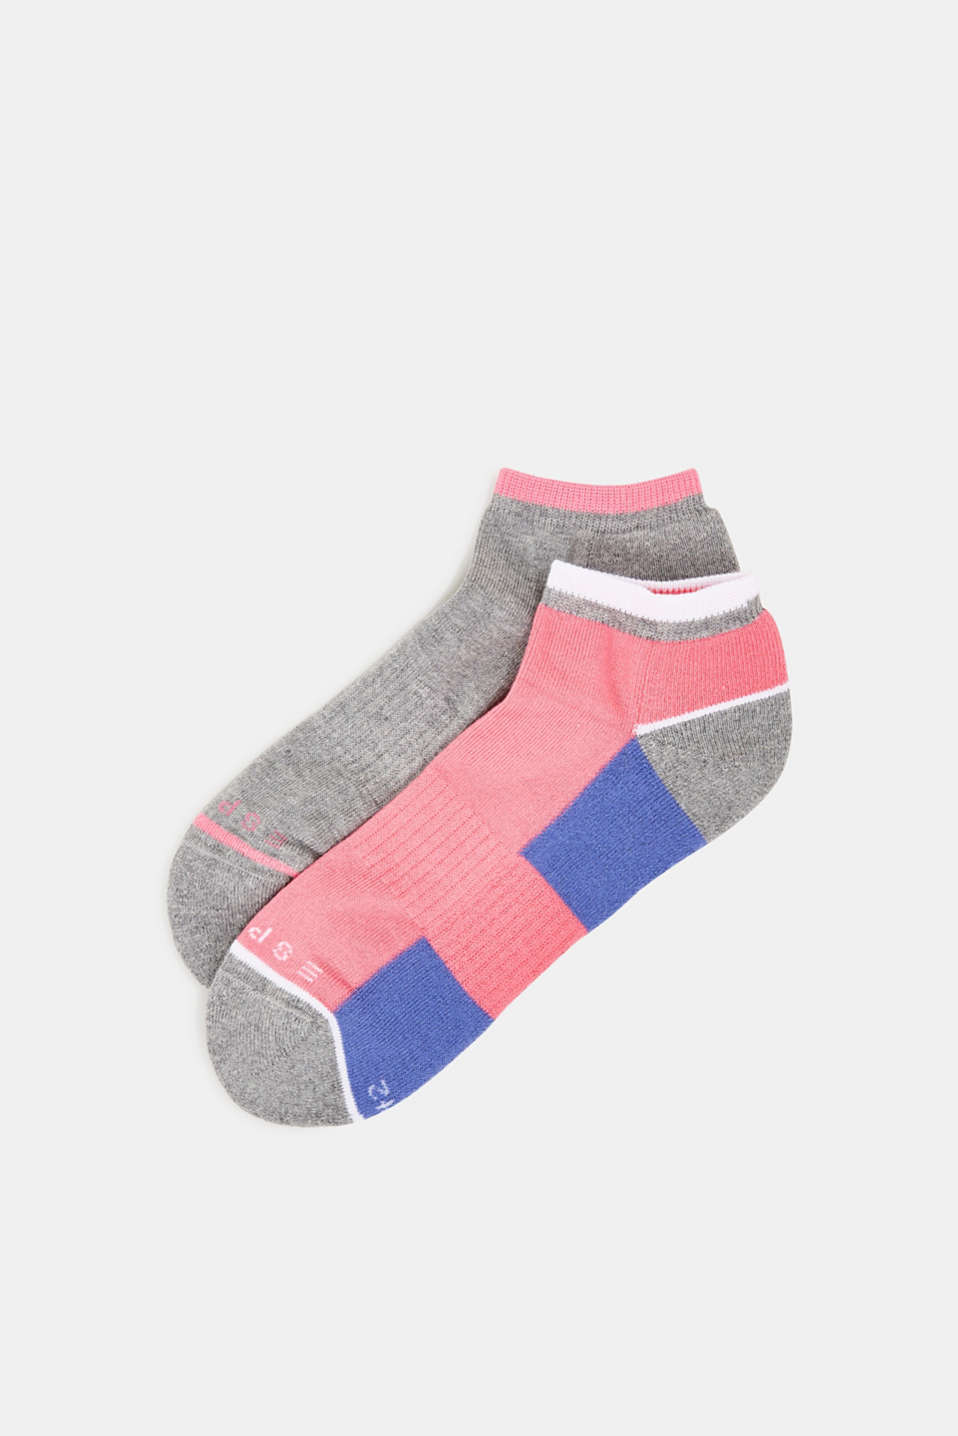 Esprit - 2er Pack Sneaker-Socken mit Color-Block